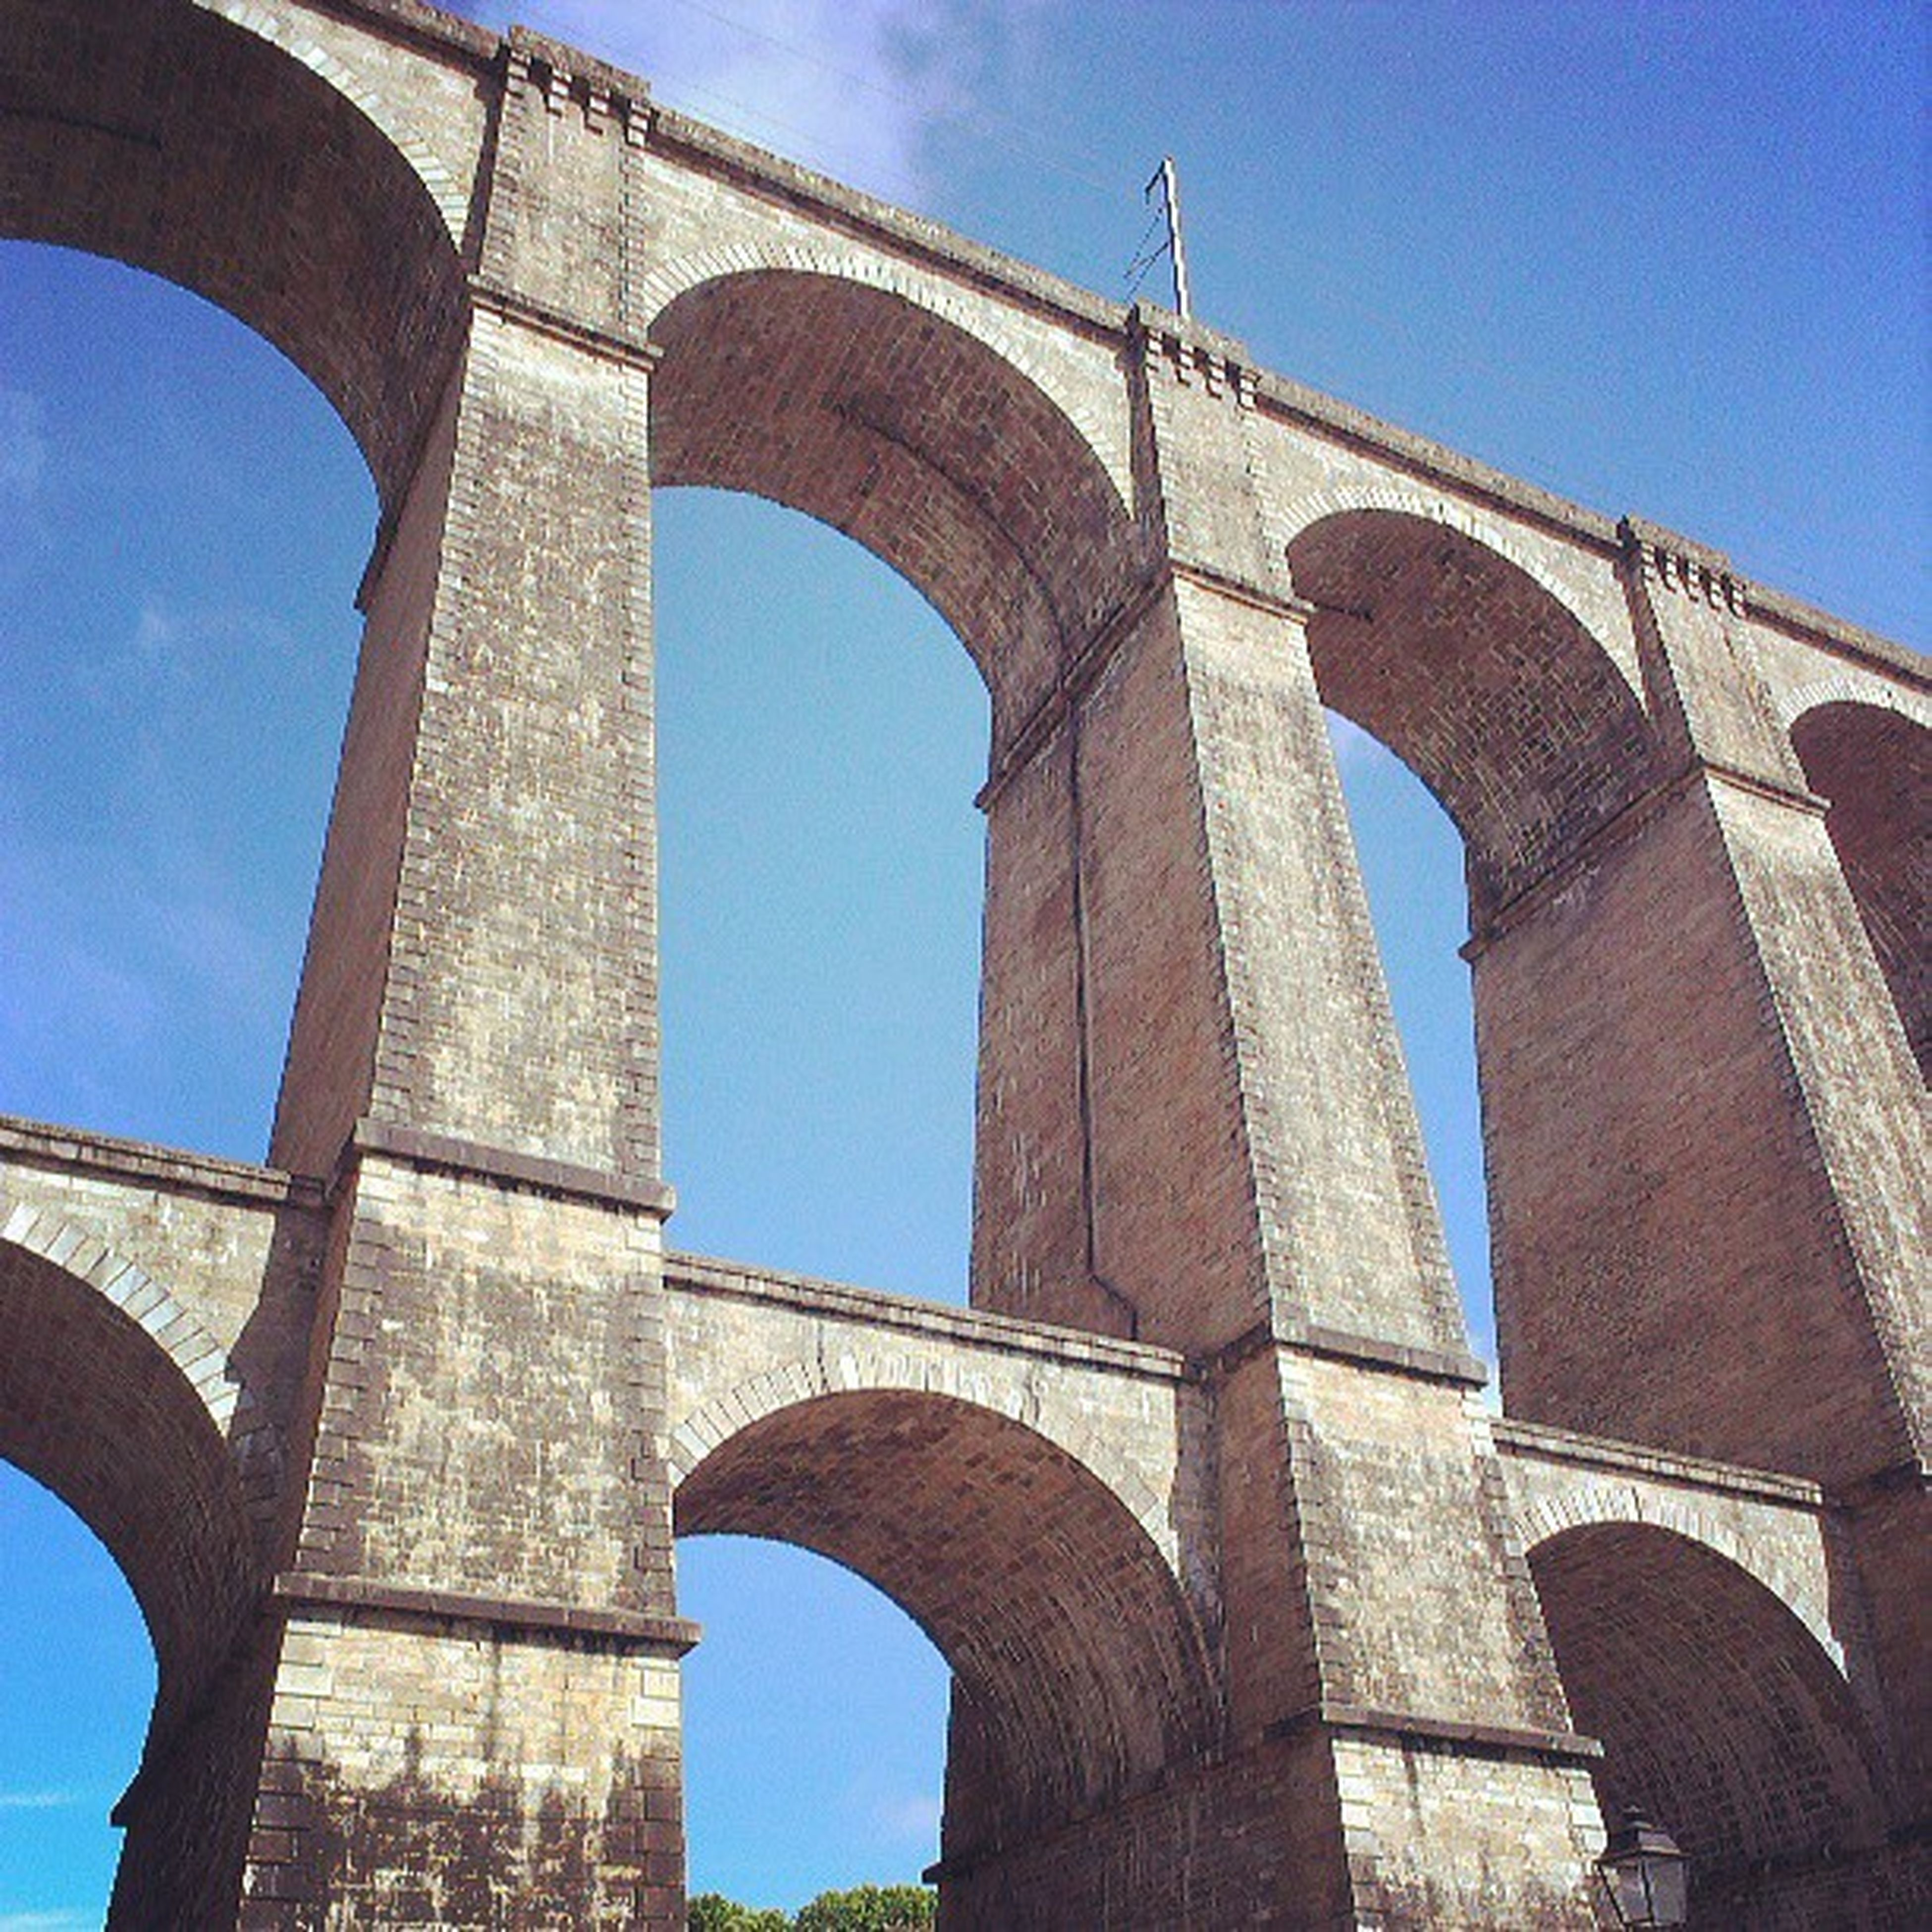 architecture, built structure, low angle view, arch, connection, bridge - man made structure, history, engineering, clear sky, international landmark, famous place, bridge, architectural column, travel destinations, blue, sky, column, travel, building exterior, tourism